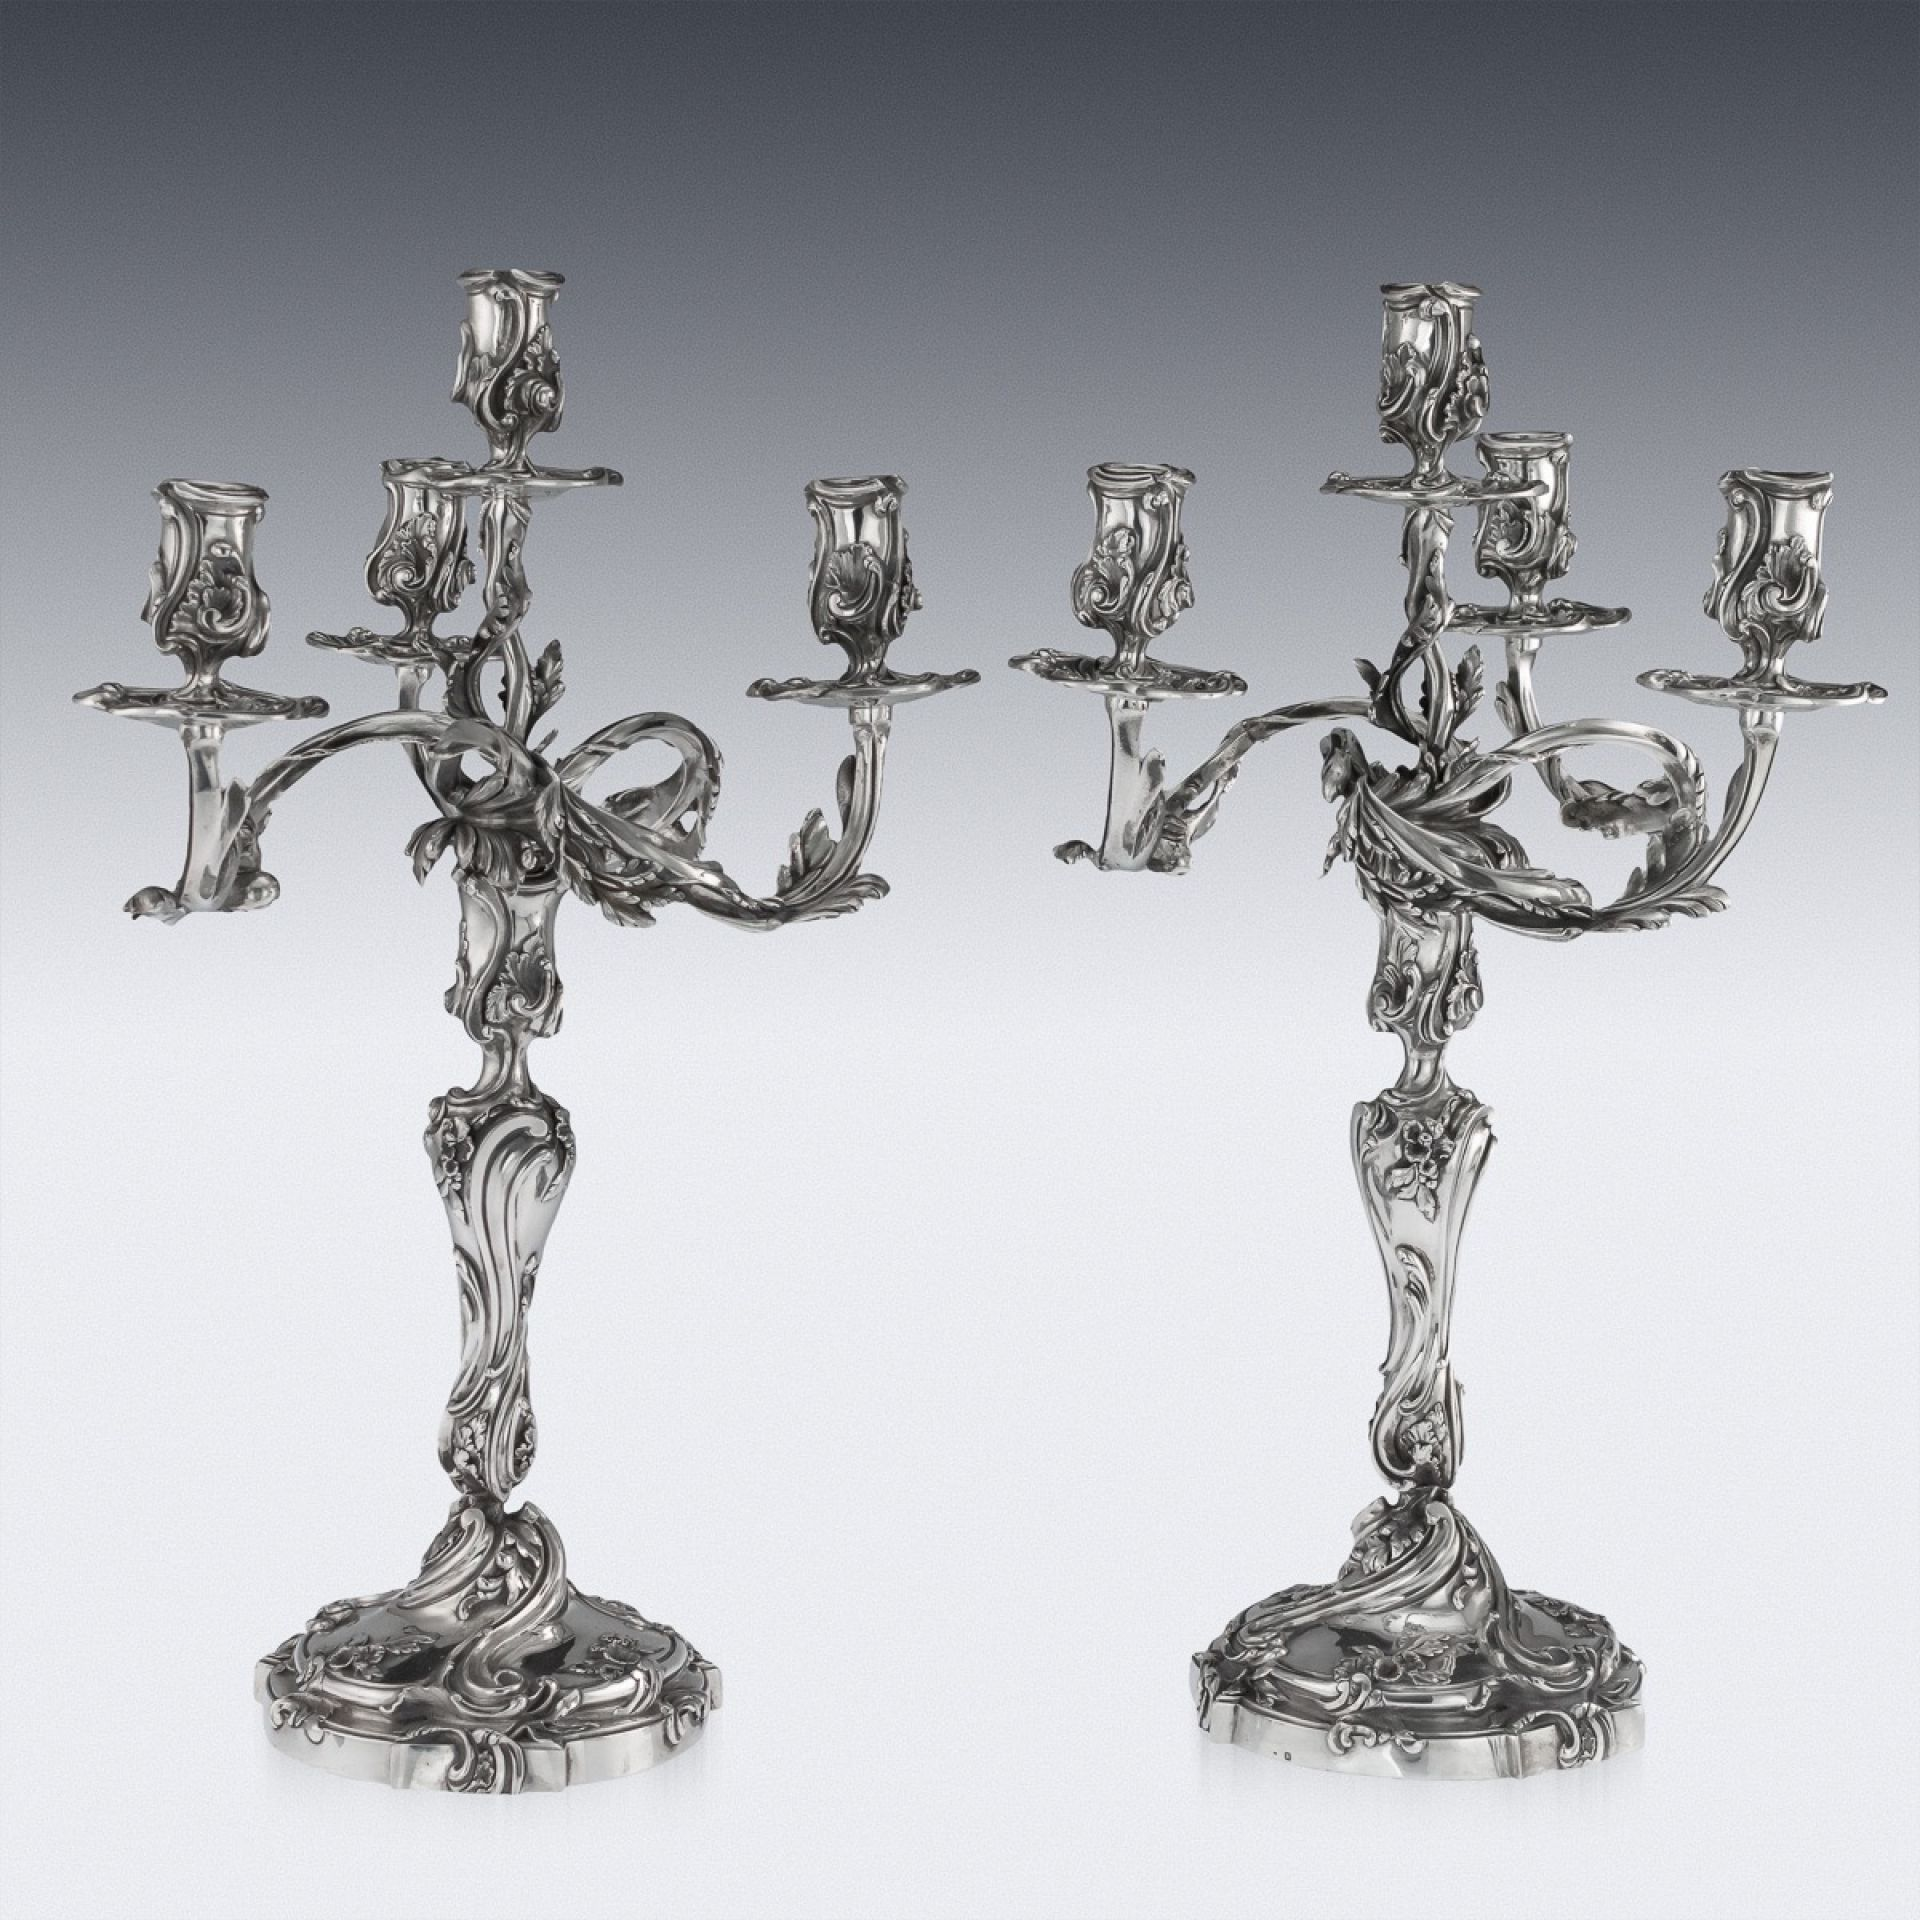 ANTIQUE 19thC FRENCH SOLID SILVER PAIR OF CAST CANDELABRA, PARIS c.1890